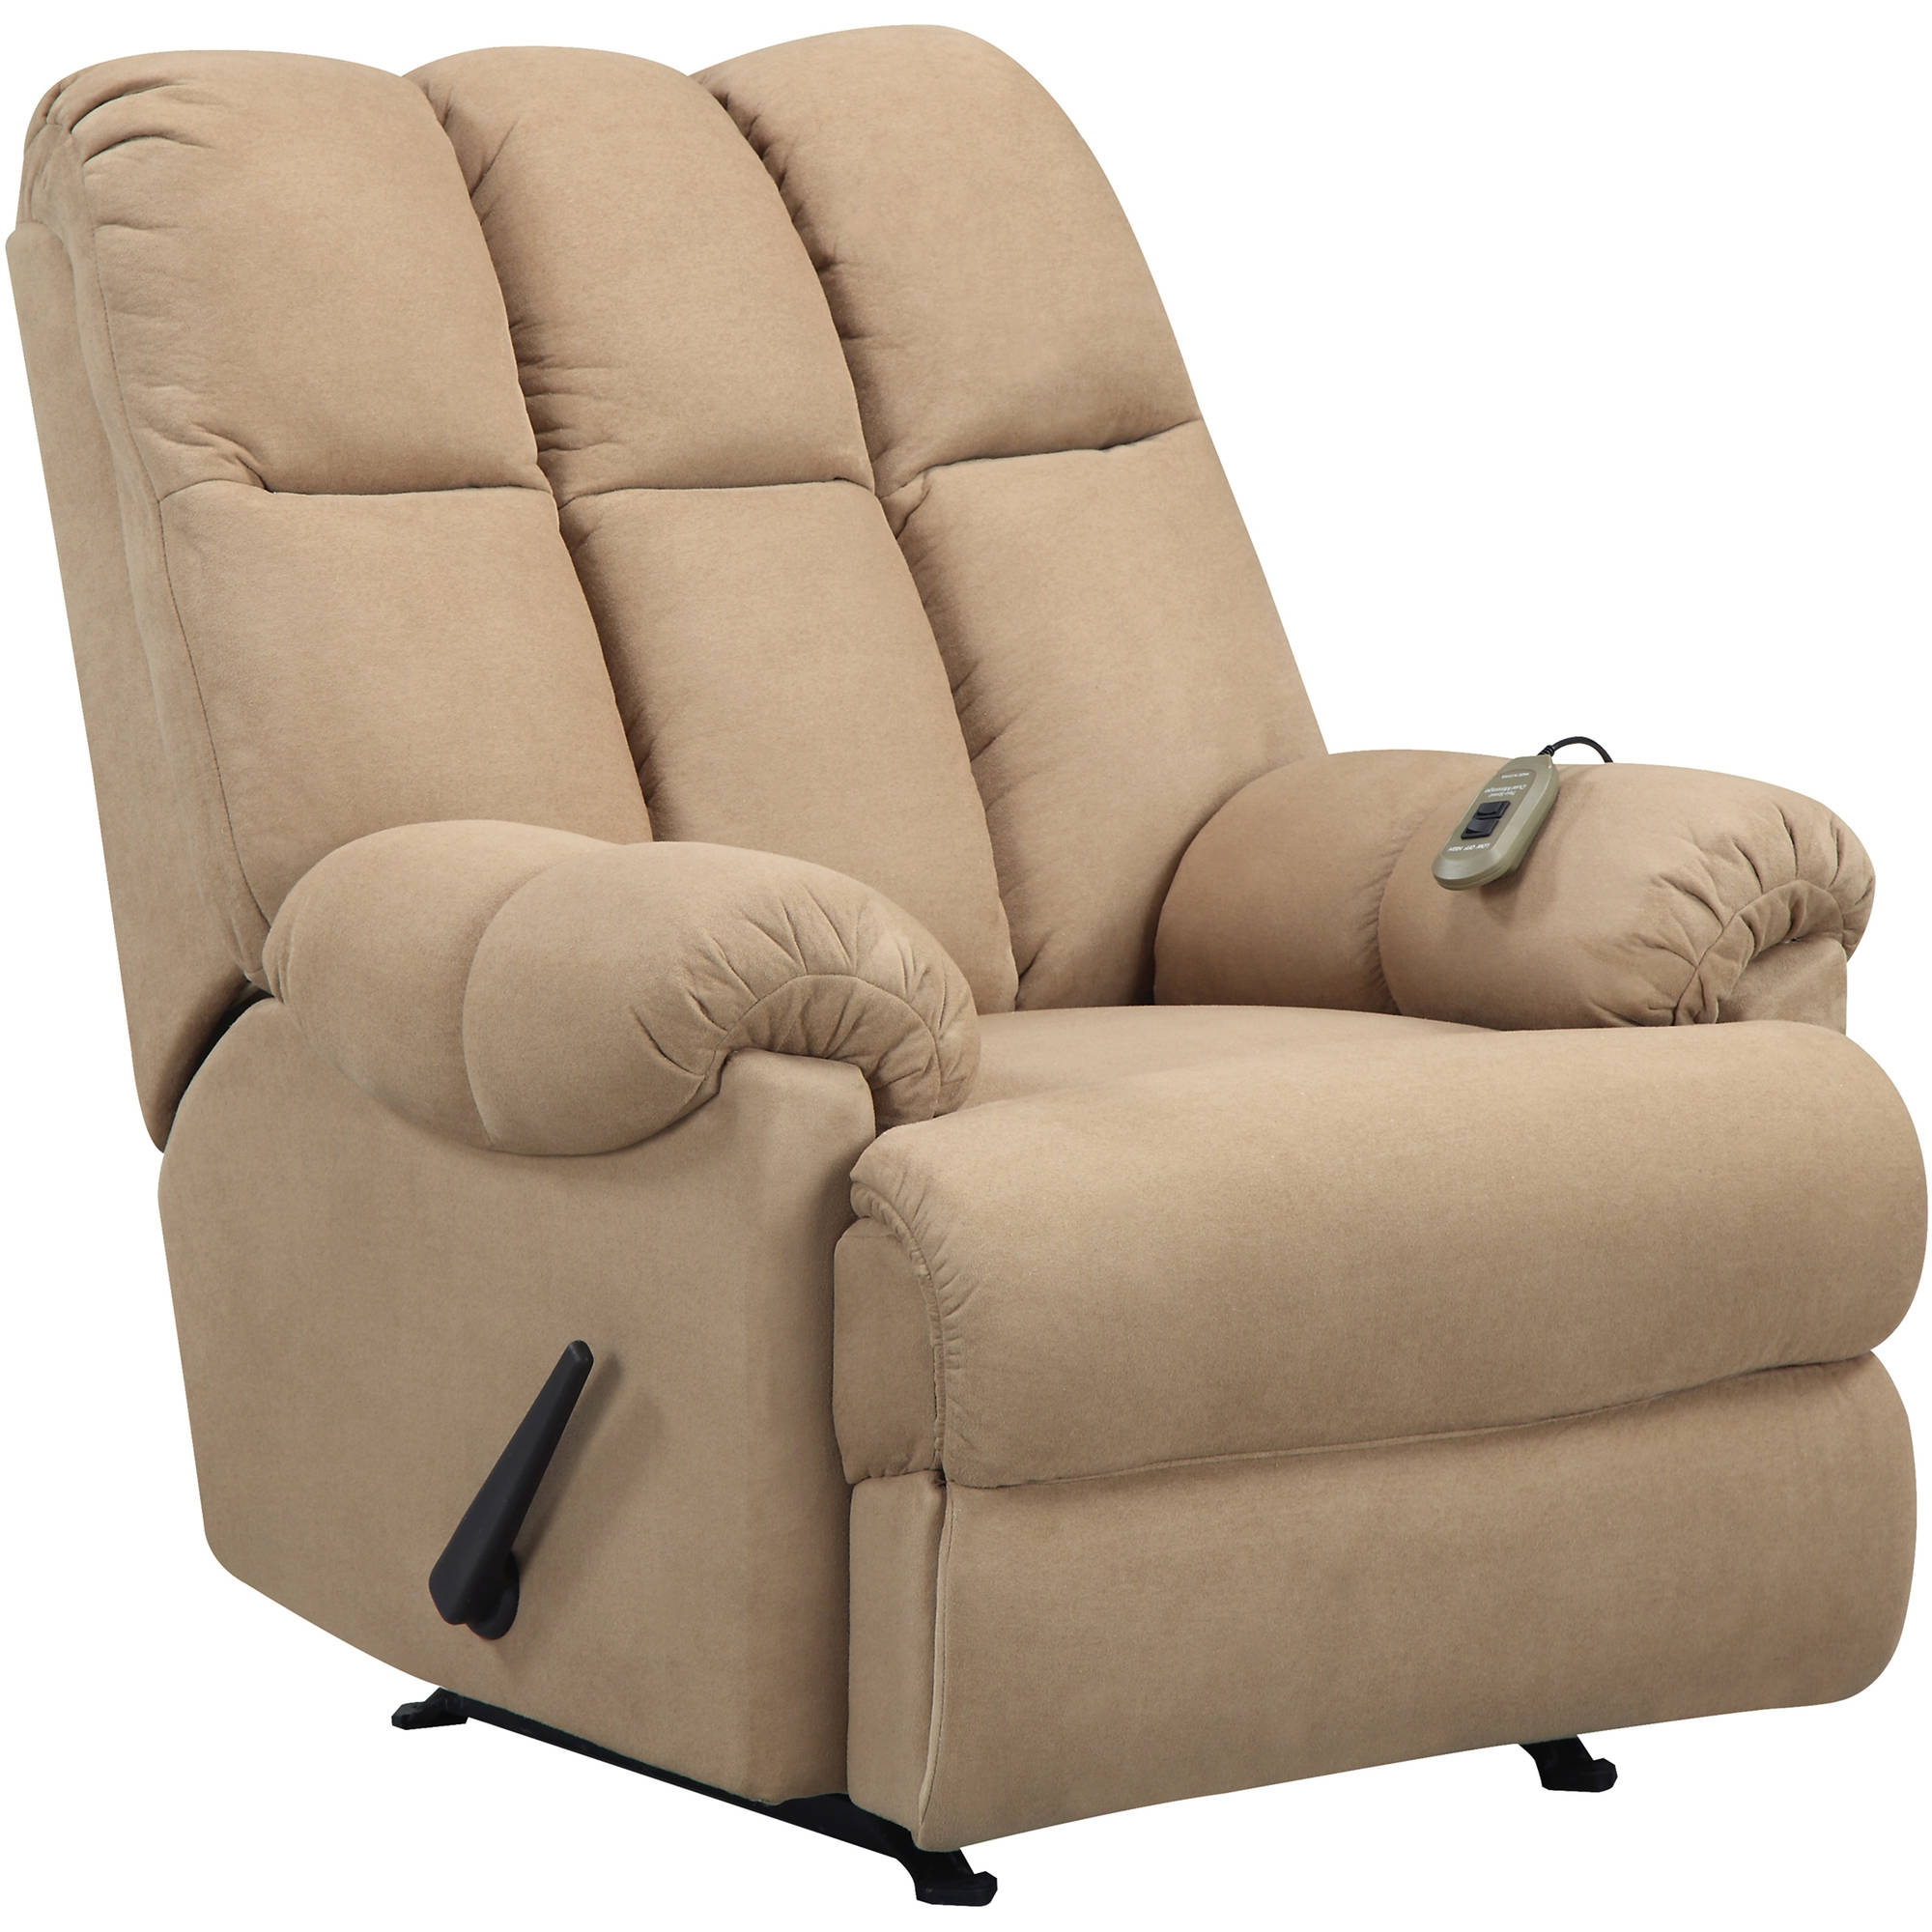 Rocking Sofa Chair Dorel Home Padded Massage Rocker Recliner With Regard To Rocking Sofa Chairs (View 11 of 15)